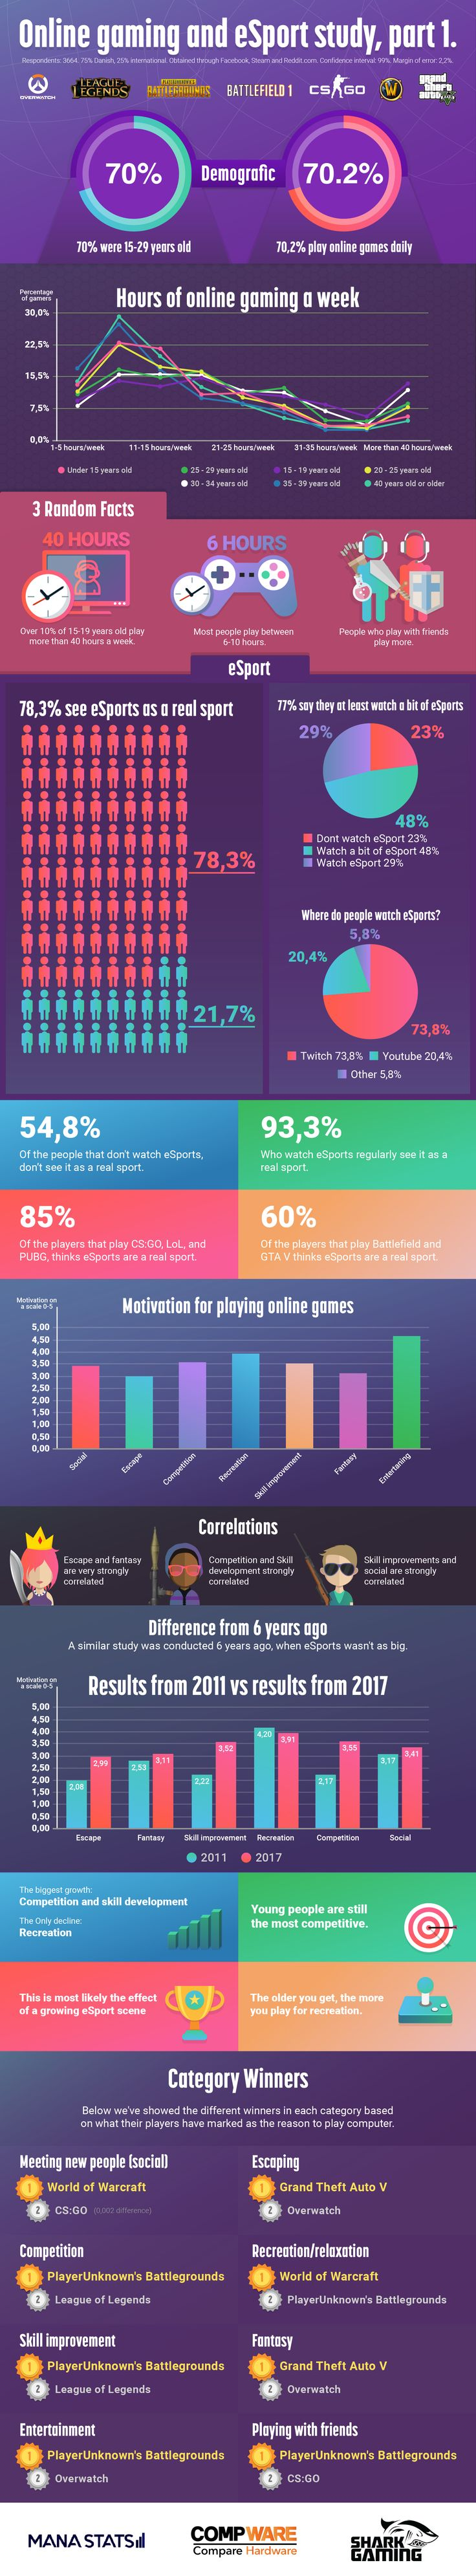 SURVEY RESULTS: Esport and motivation WoW players say they mainly play WoW to relax. #worldofwarcraft #blizzard #Hearthstone #wow #Warcraft #BlizzardCS #gaming